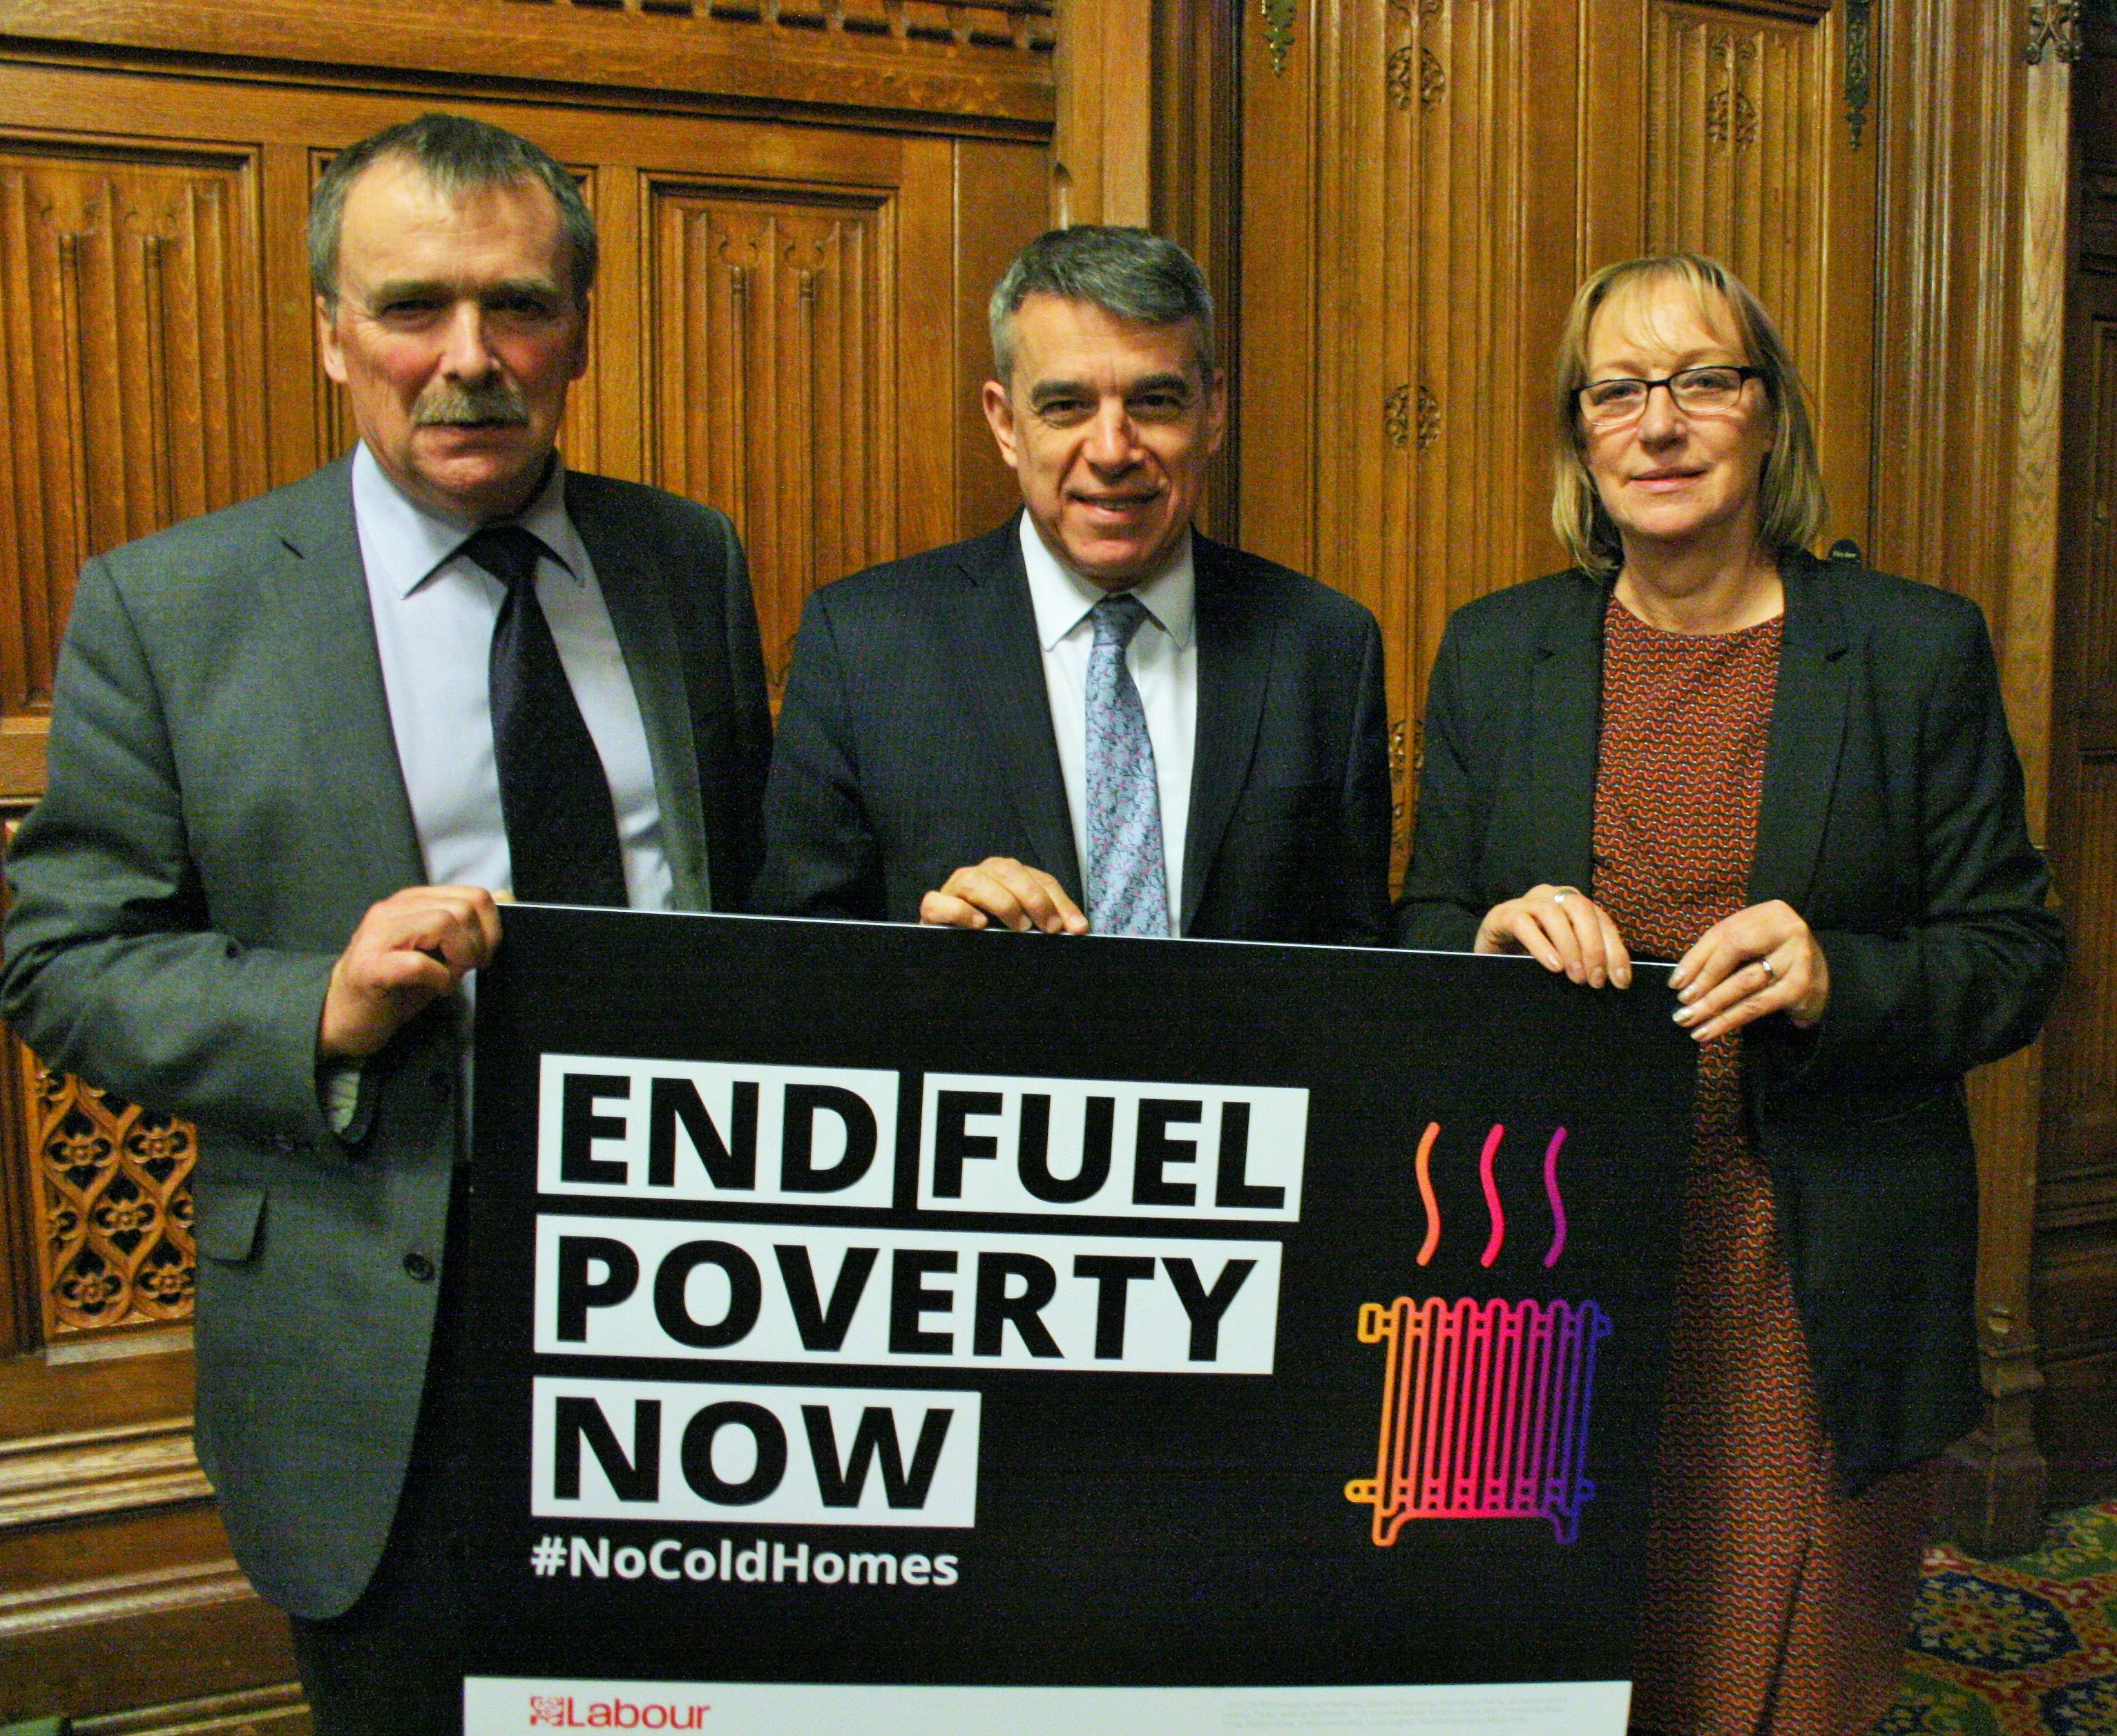 FUel_Poverty_Day.jpg